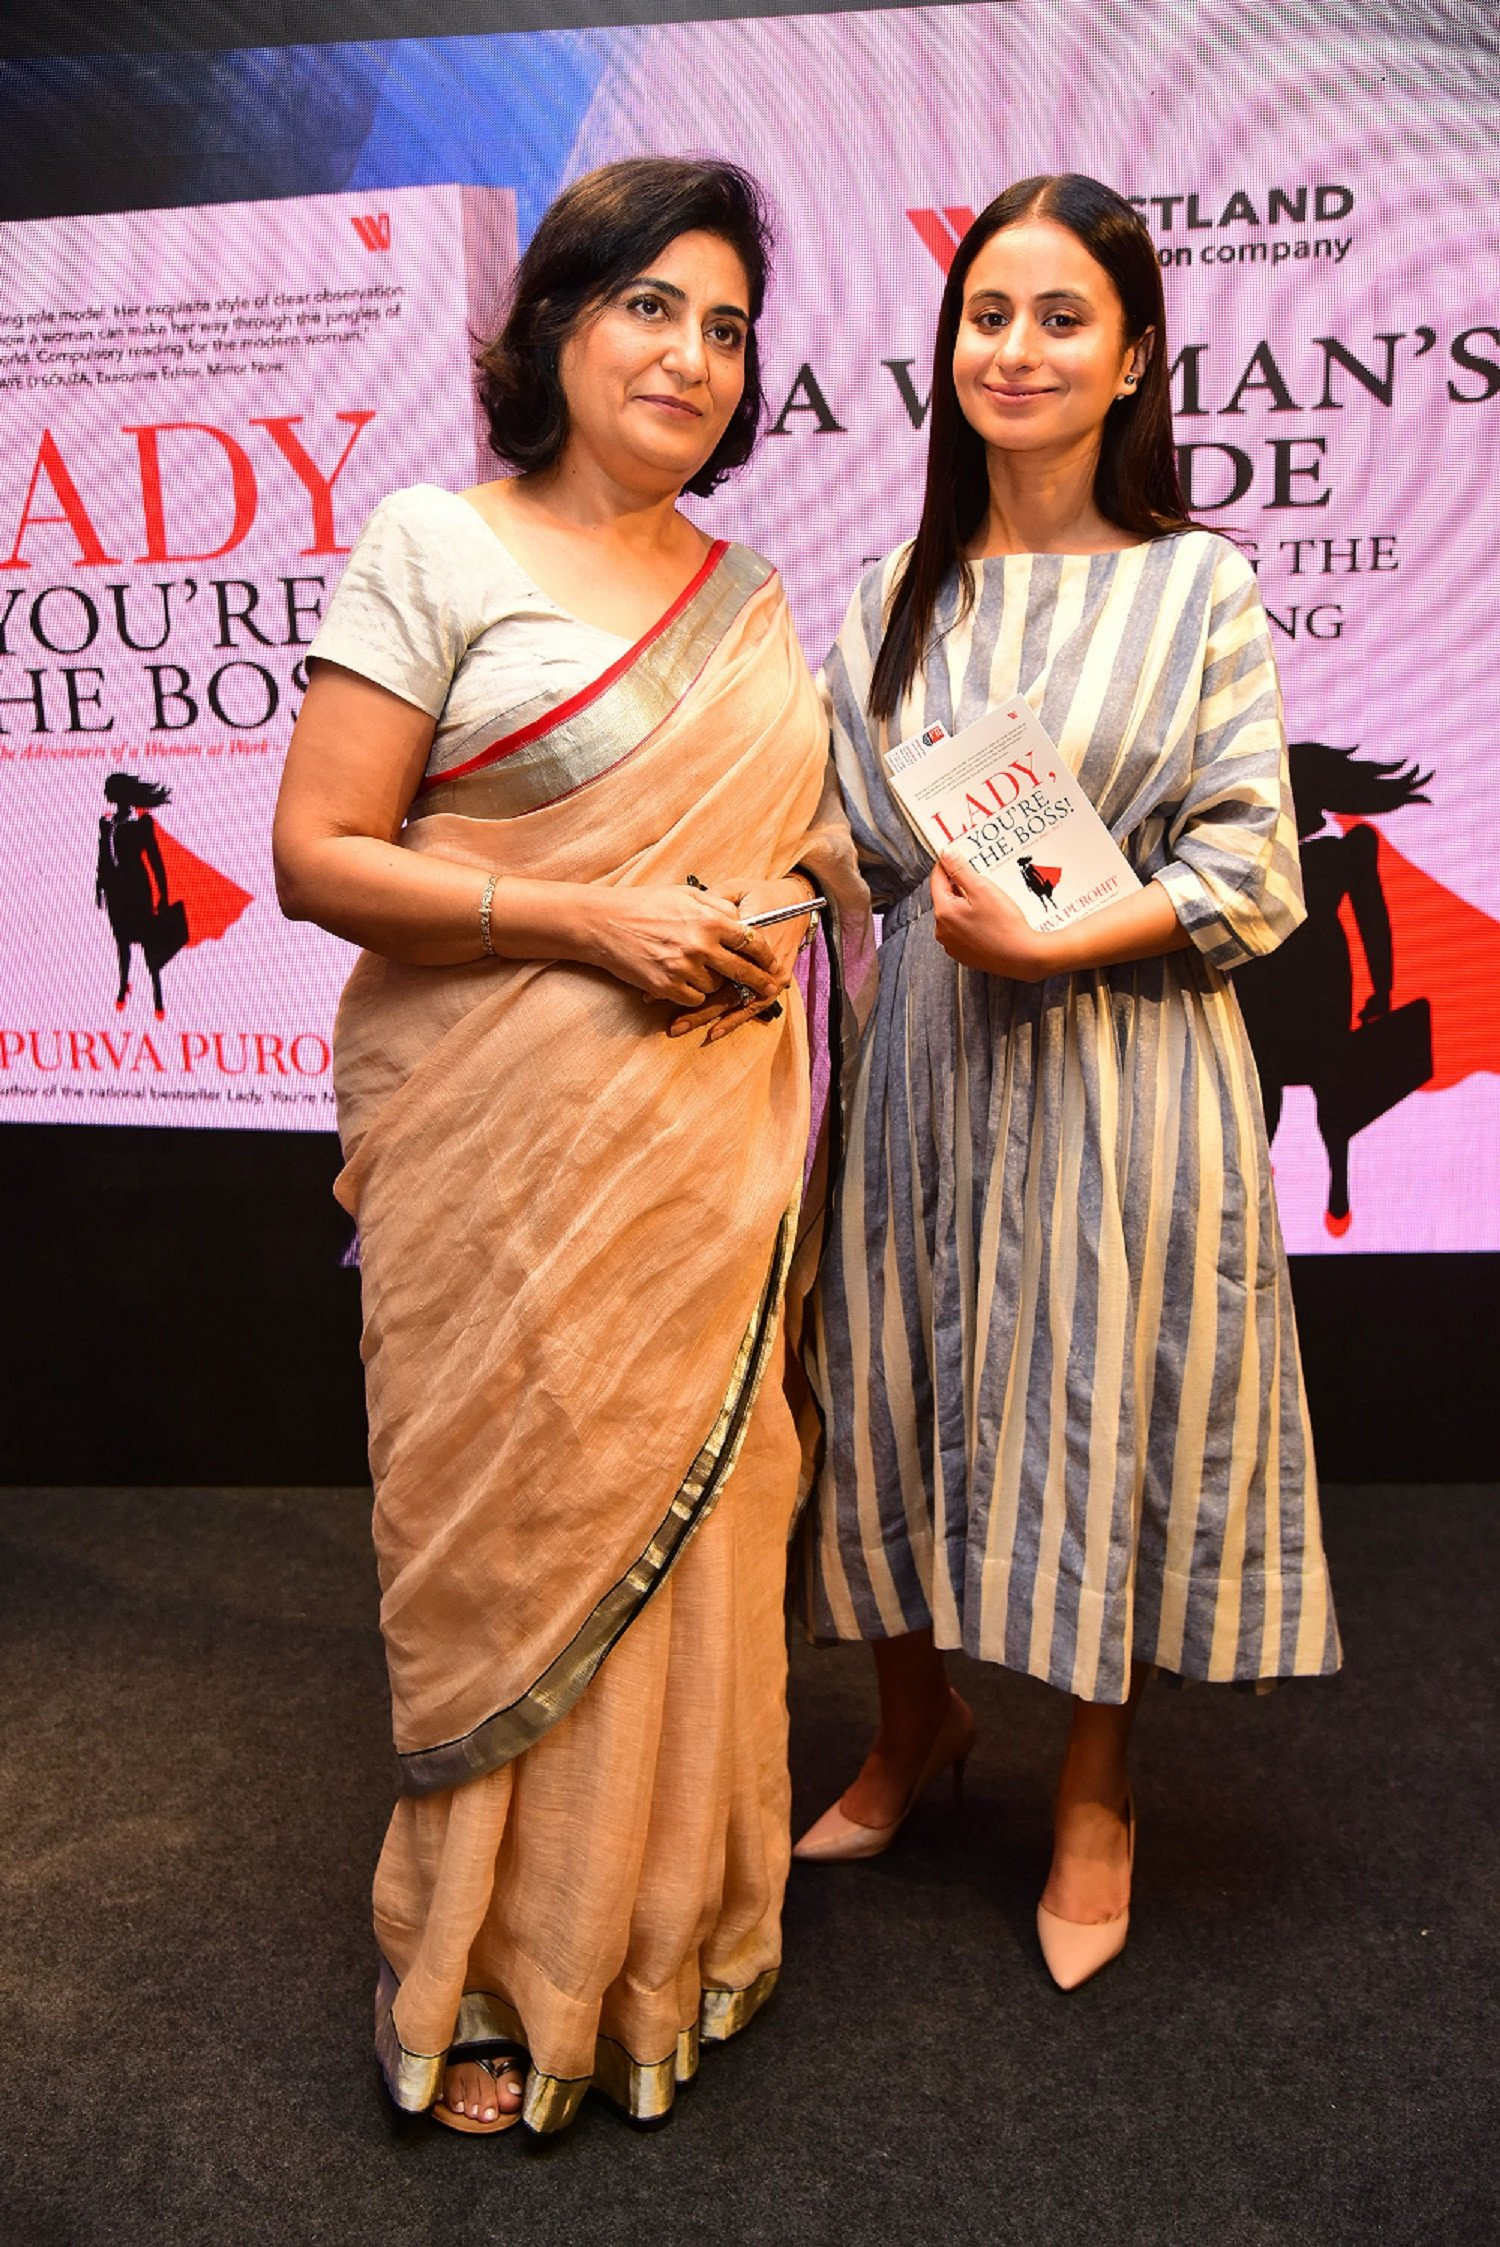 Best-Selling Author Apurva Purohit, Launches Her Second Book- 'Lady,You're The Boss!'